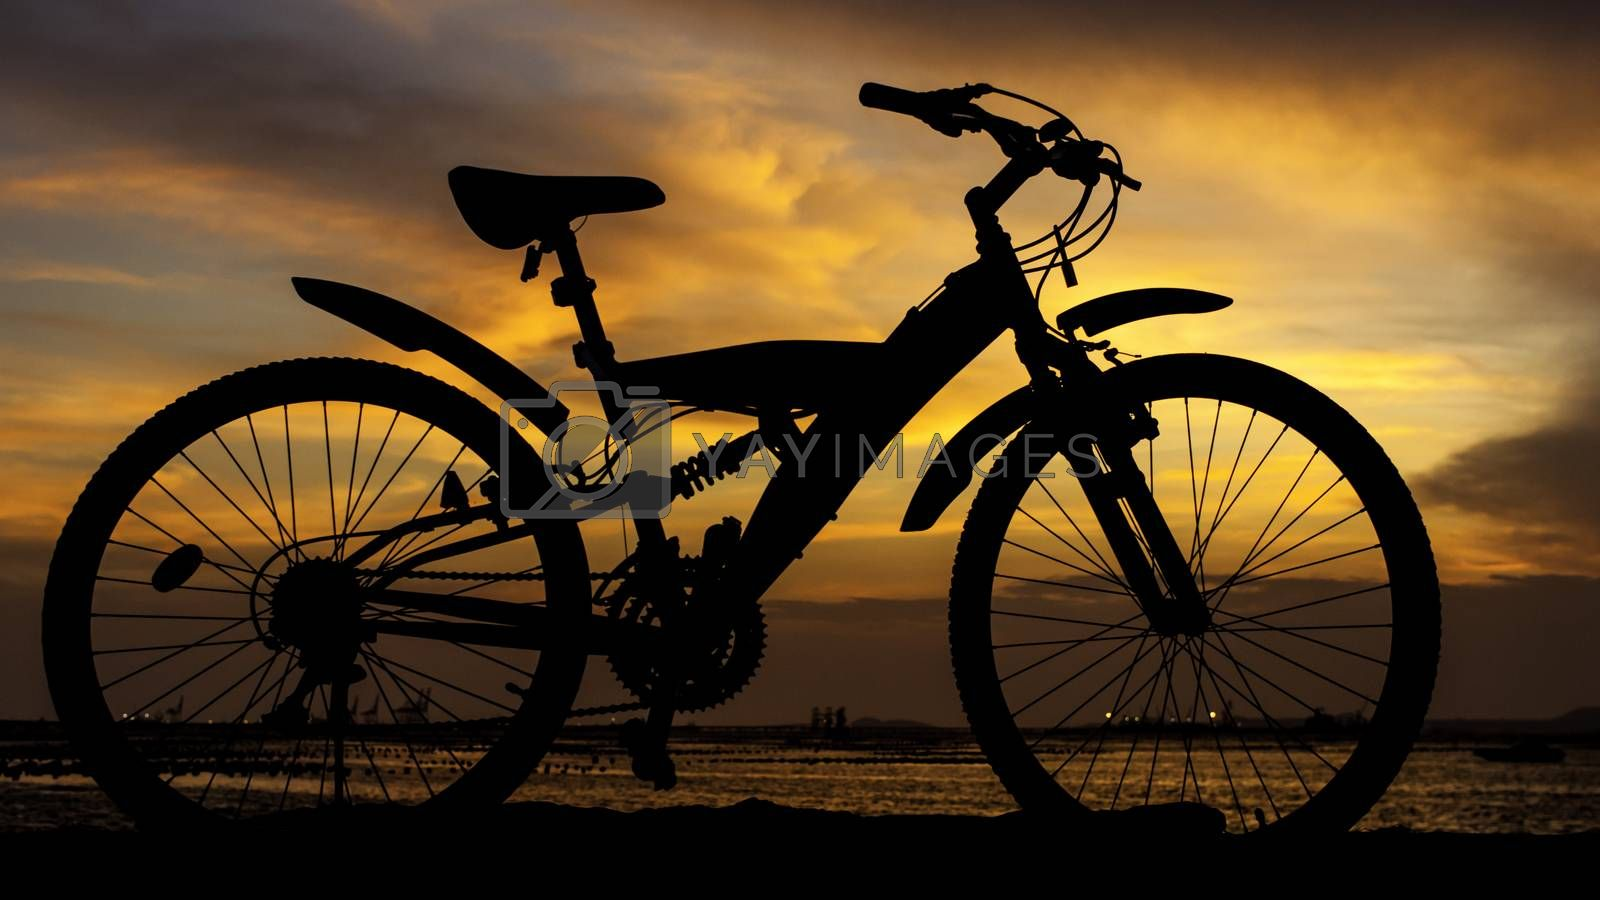 Silhouette of mountain bike with sunset sky beside sea, Thailand